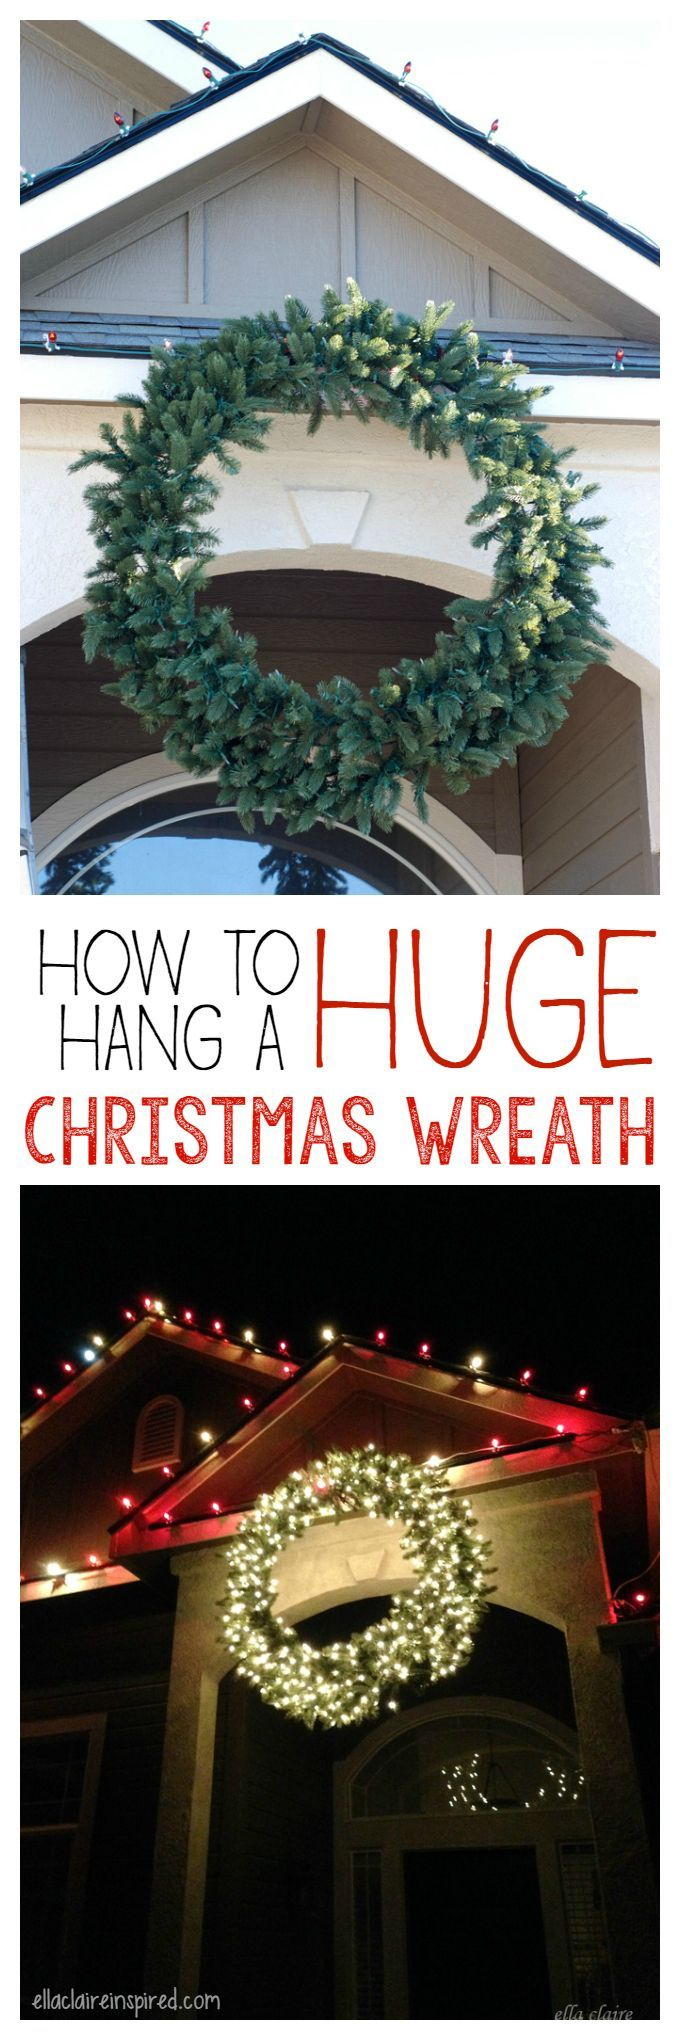 How to Hang a Giant Outdoor Christmas Wreath   Christmas wreaths, Outdoor christmas wreaths ...